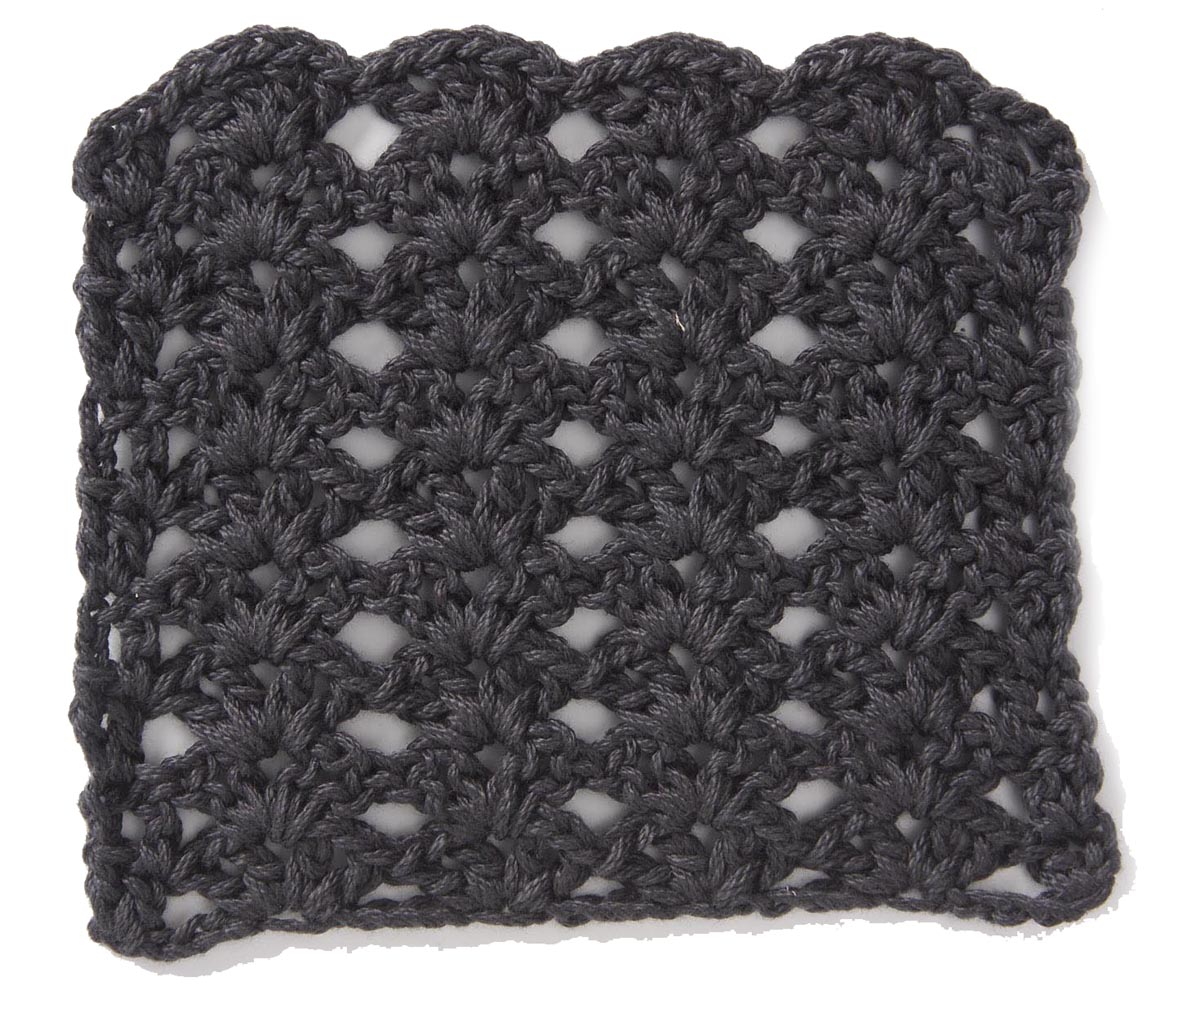 Free Crochet Stitch Stacked Shell Pattern ? Crochet Kingdom